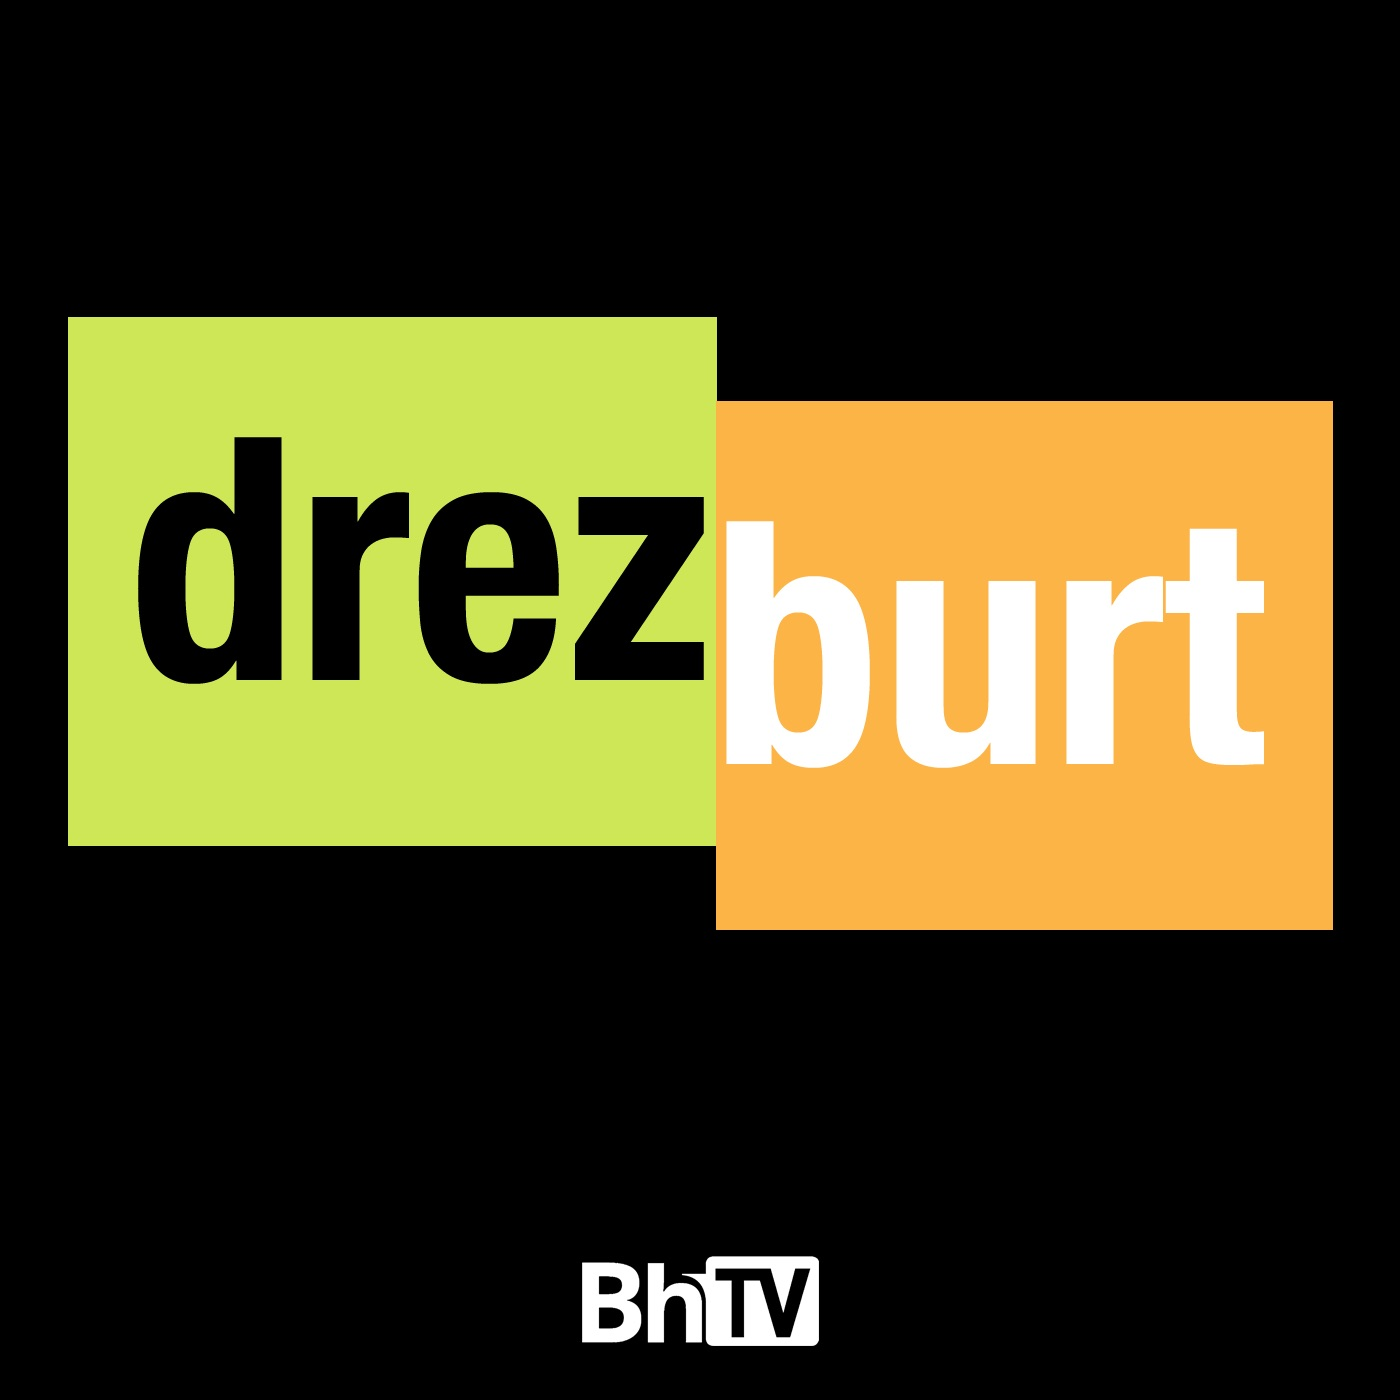 BhTV: Drezburt (audio)